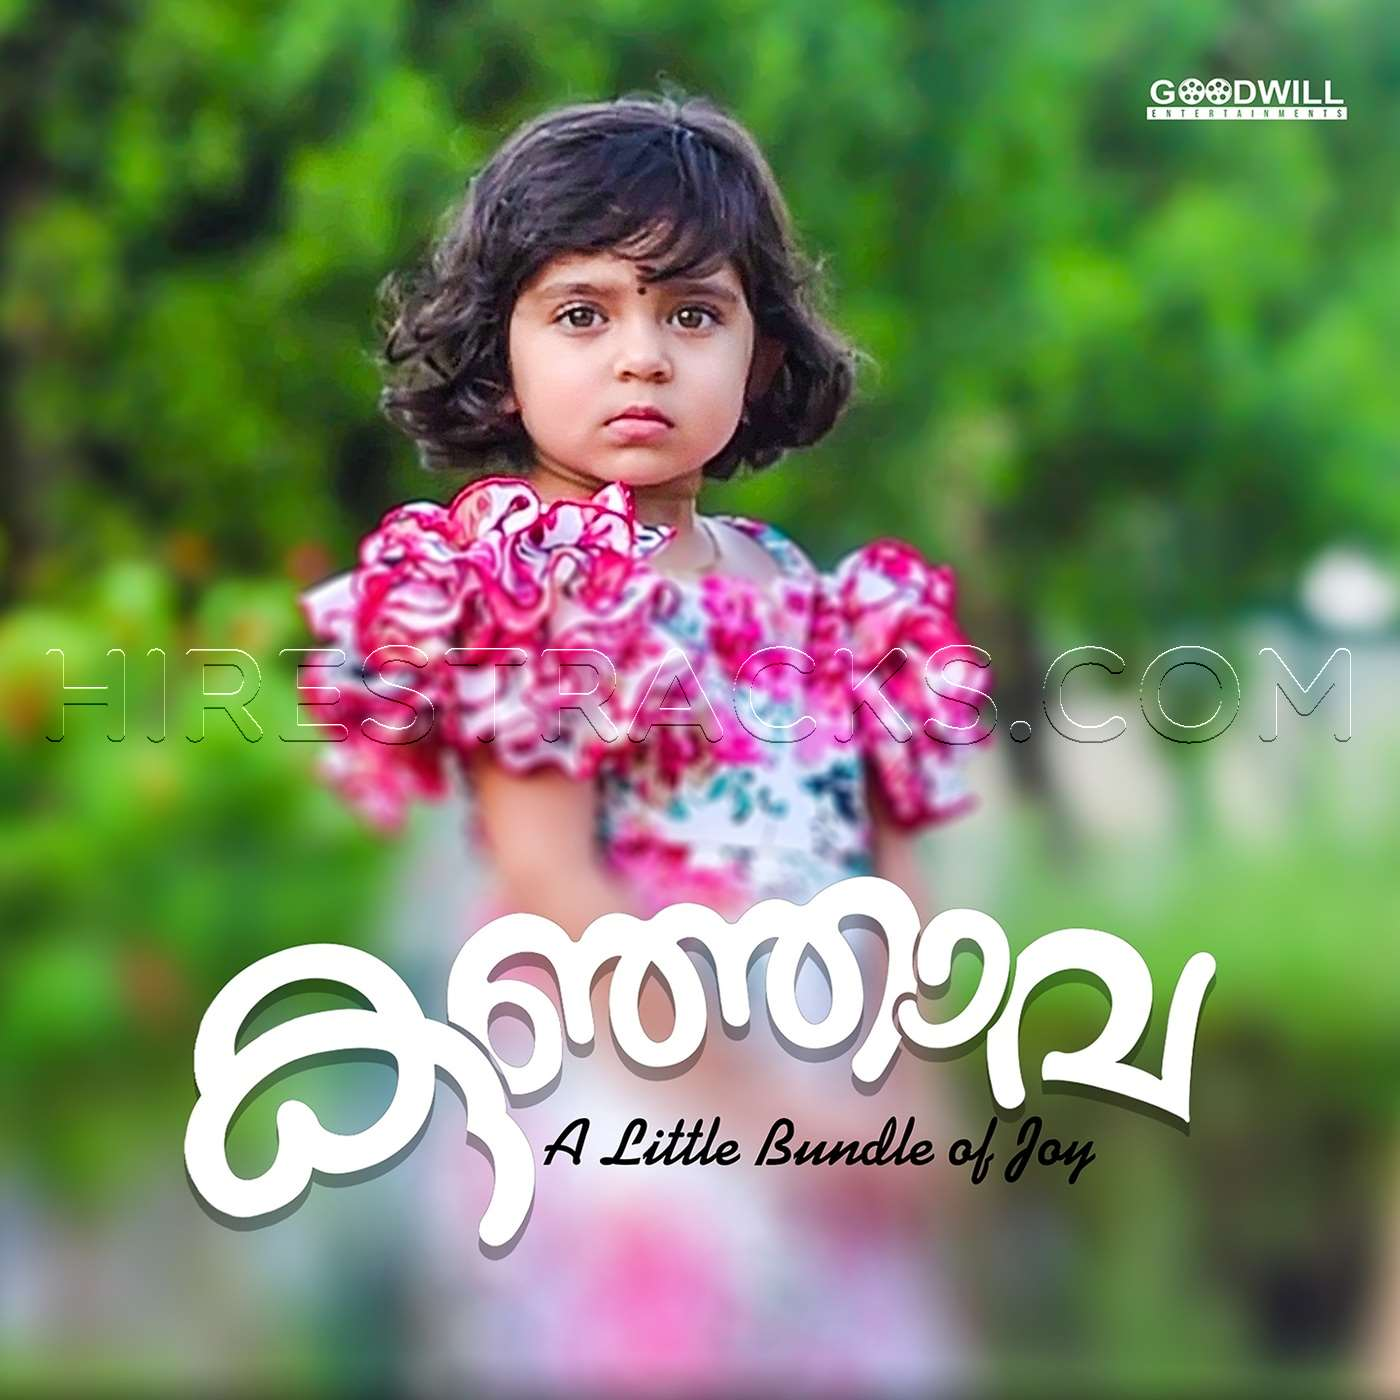 Melle Melle Ennarikilaay (From Kunjava – A Little Bundle of Joy) (2019)